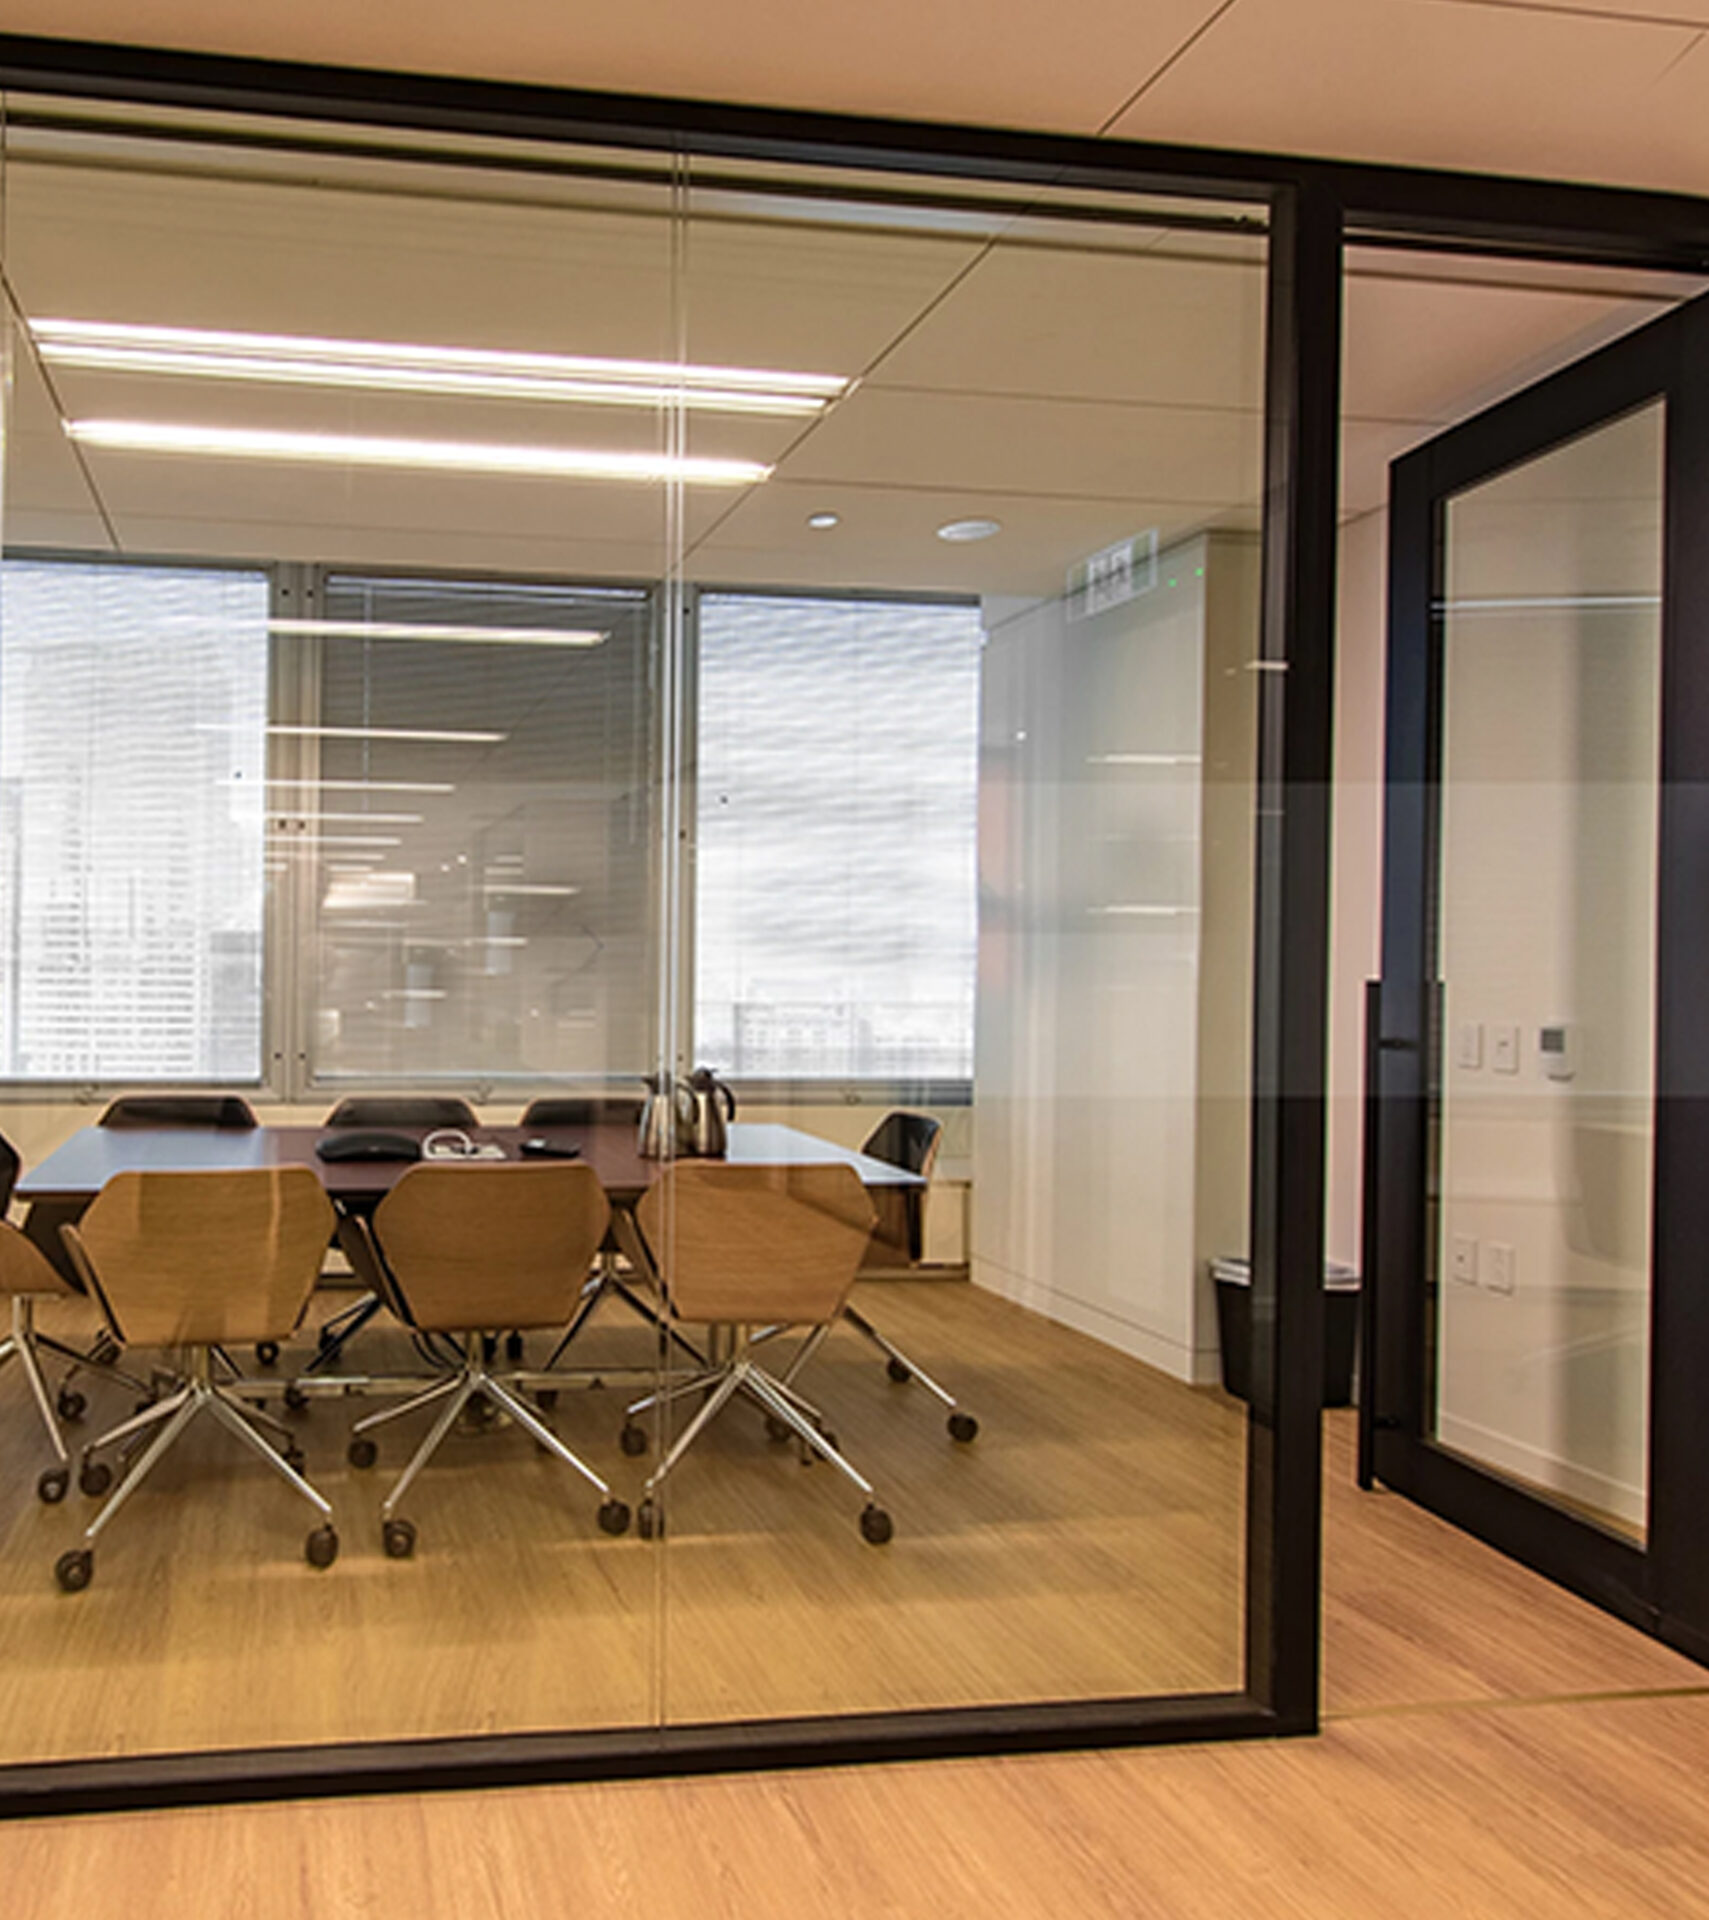 Starwall integrated glass wall systems shown in center-mount glass in black frame.